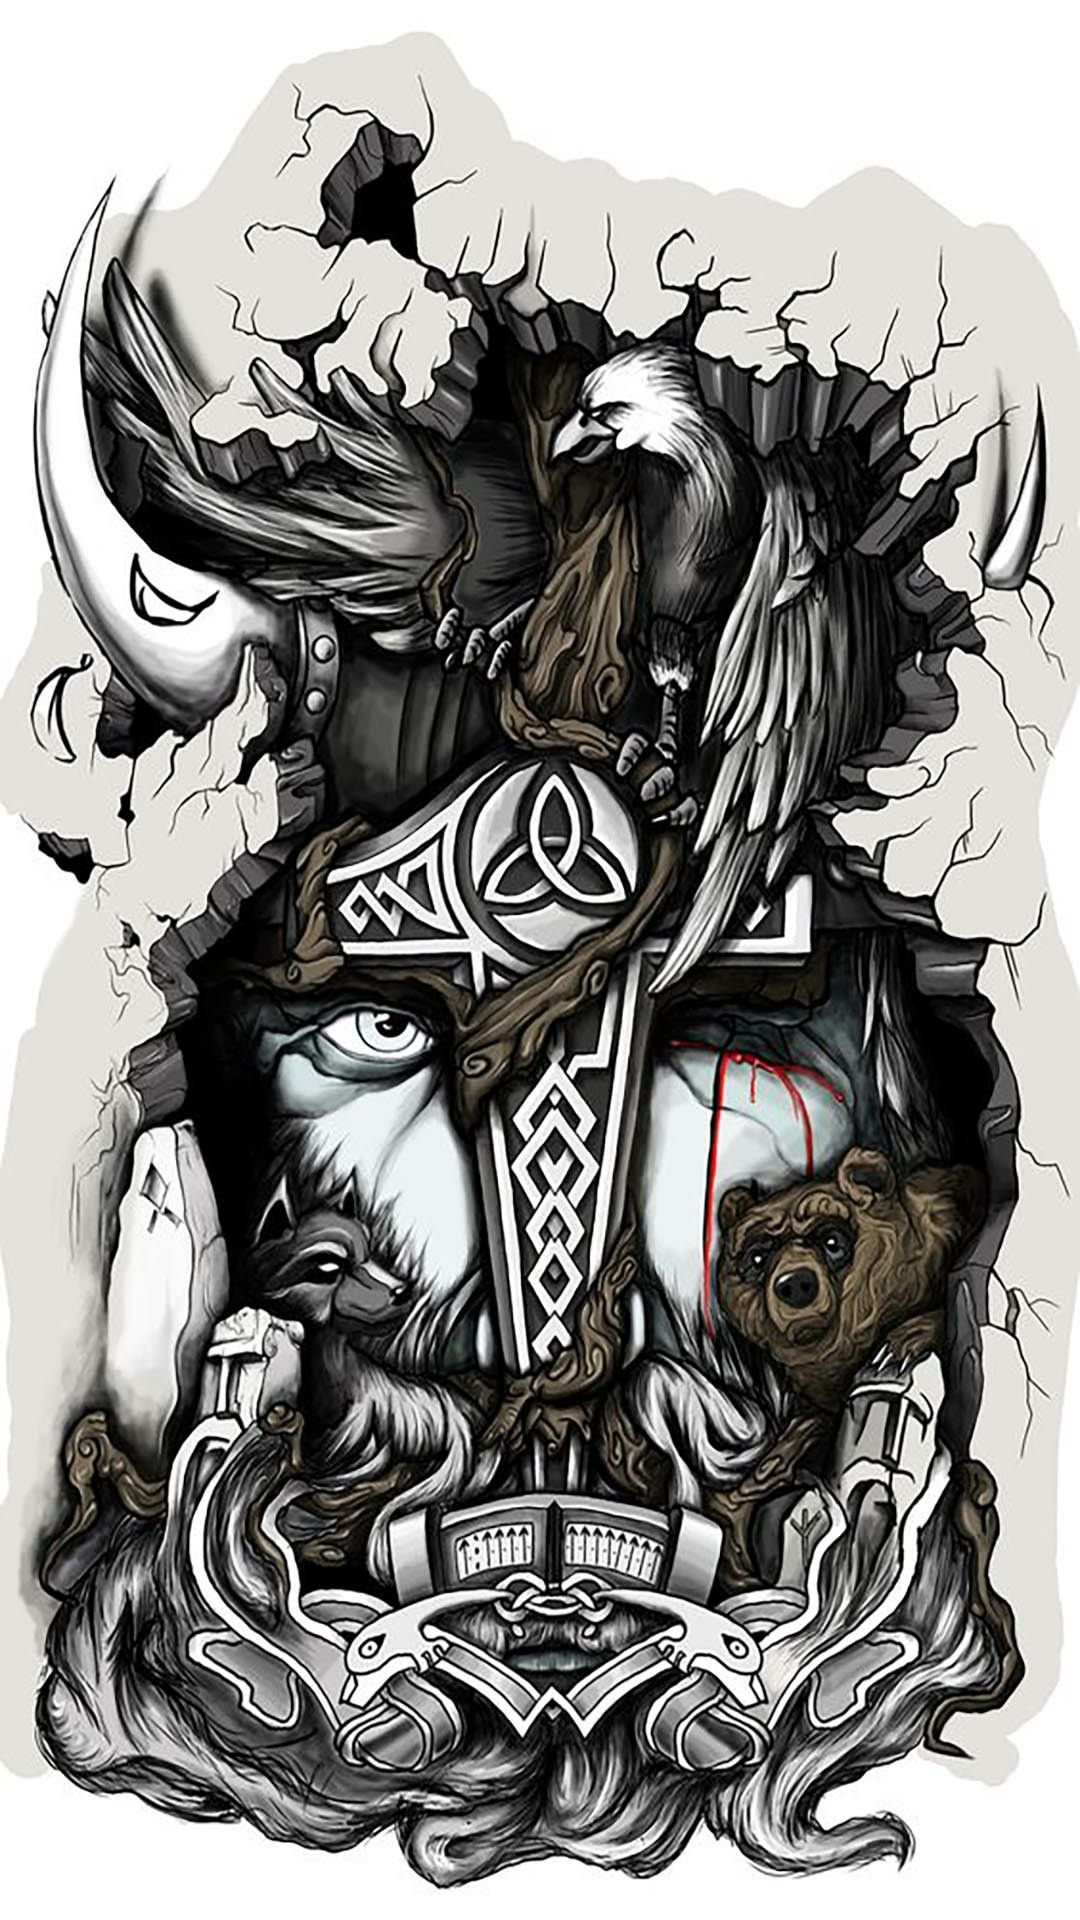 Pin By Crys Charbs On 3 Skullz Mythology Tattoos Norse